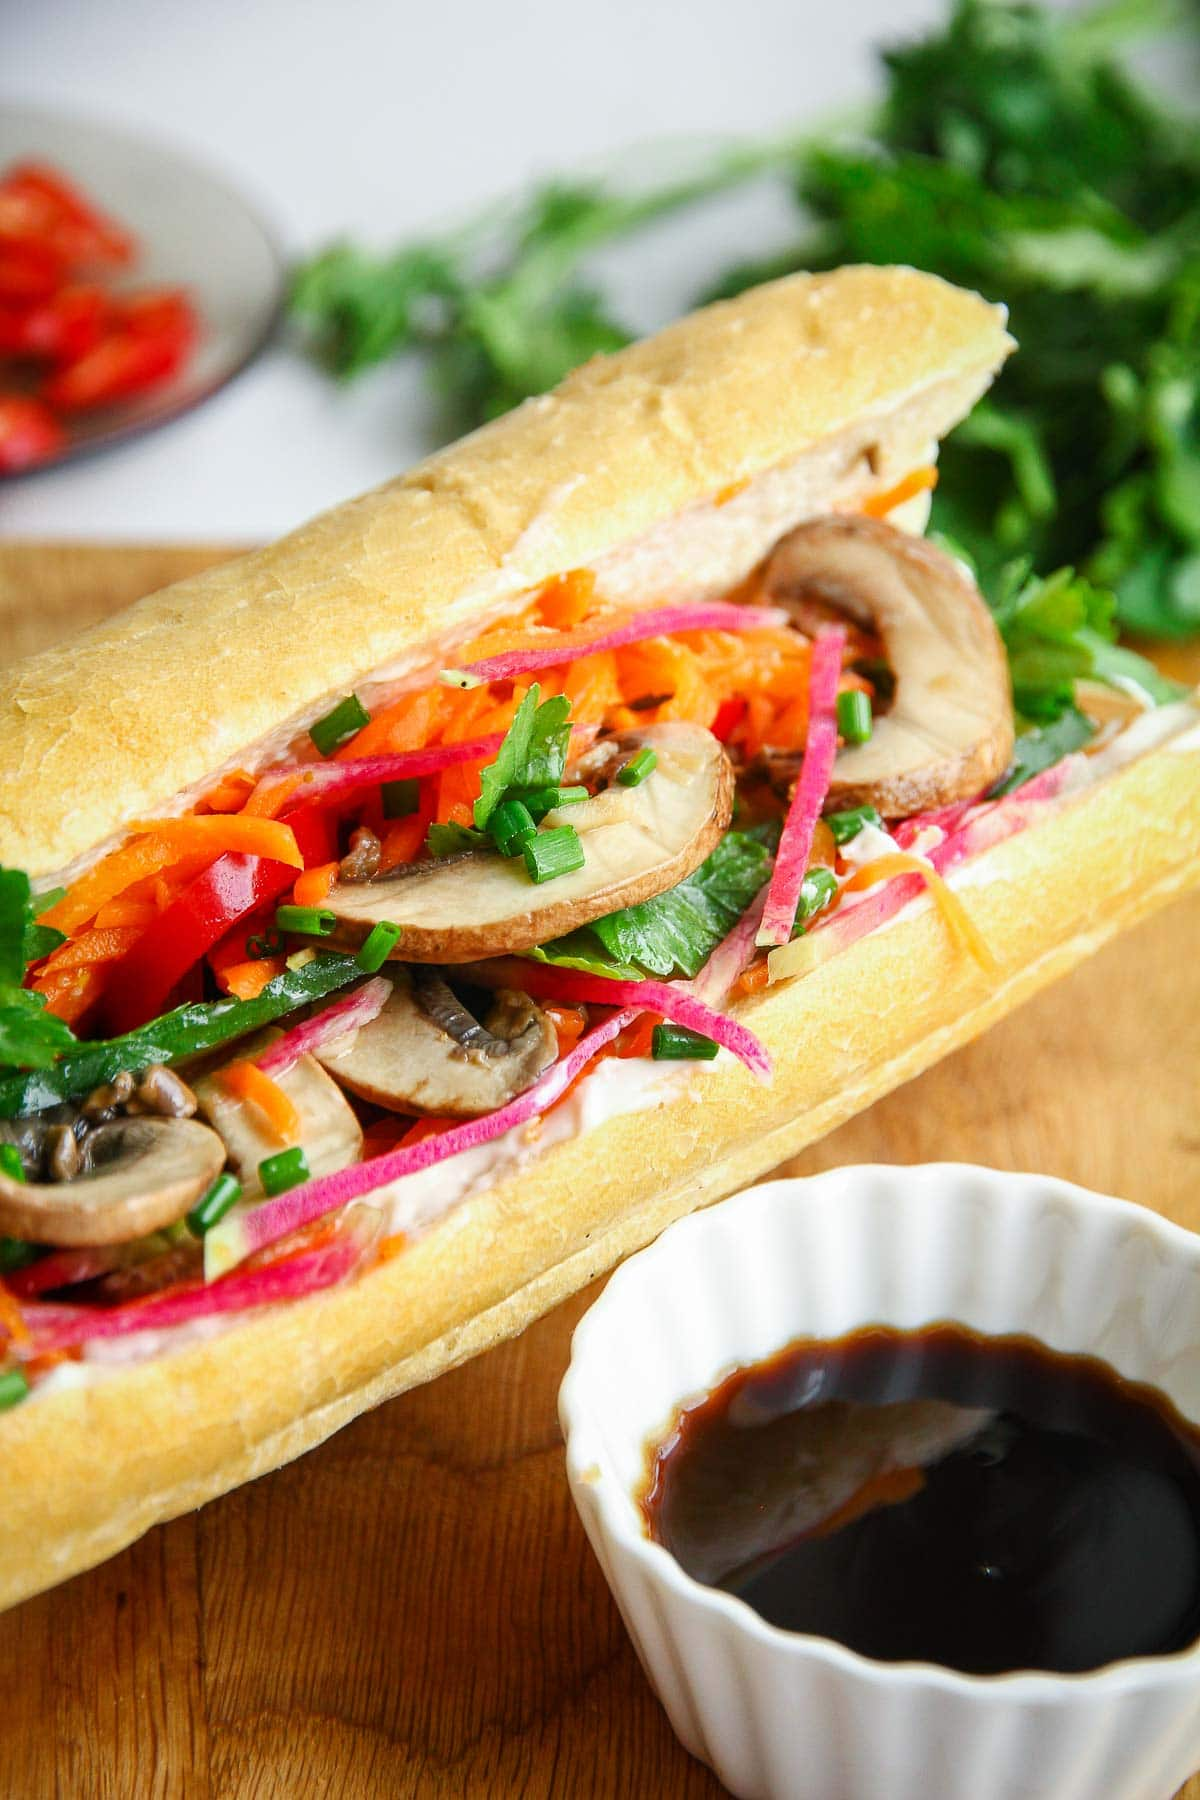 A delicious and flavorful vegan Vietnamese banh mi sandwich made with mushrooms.